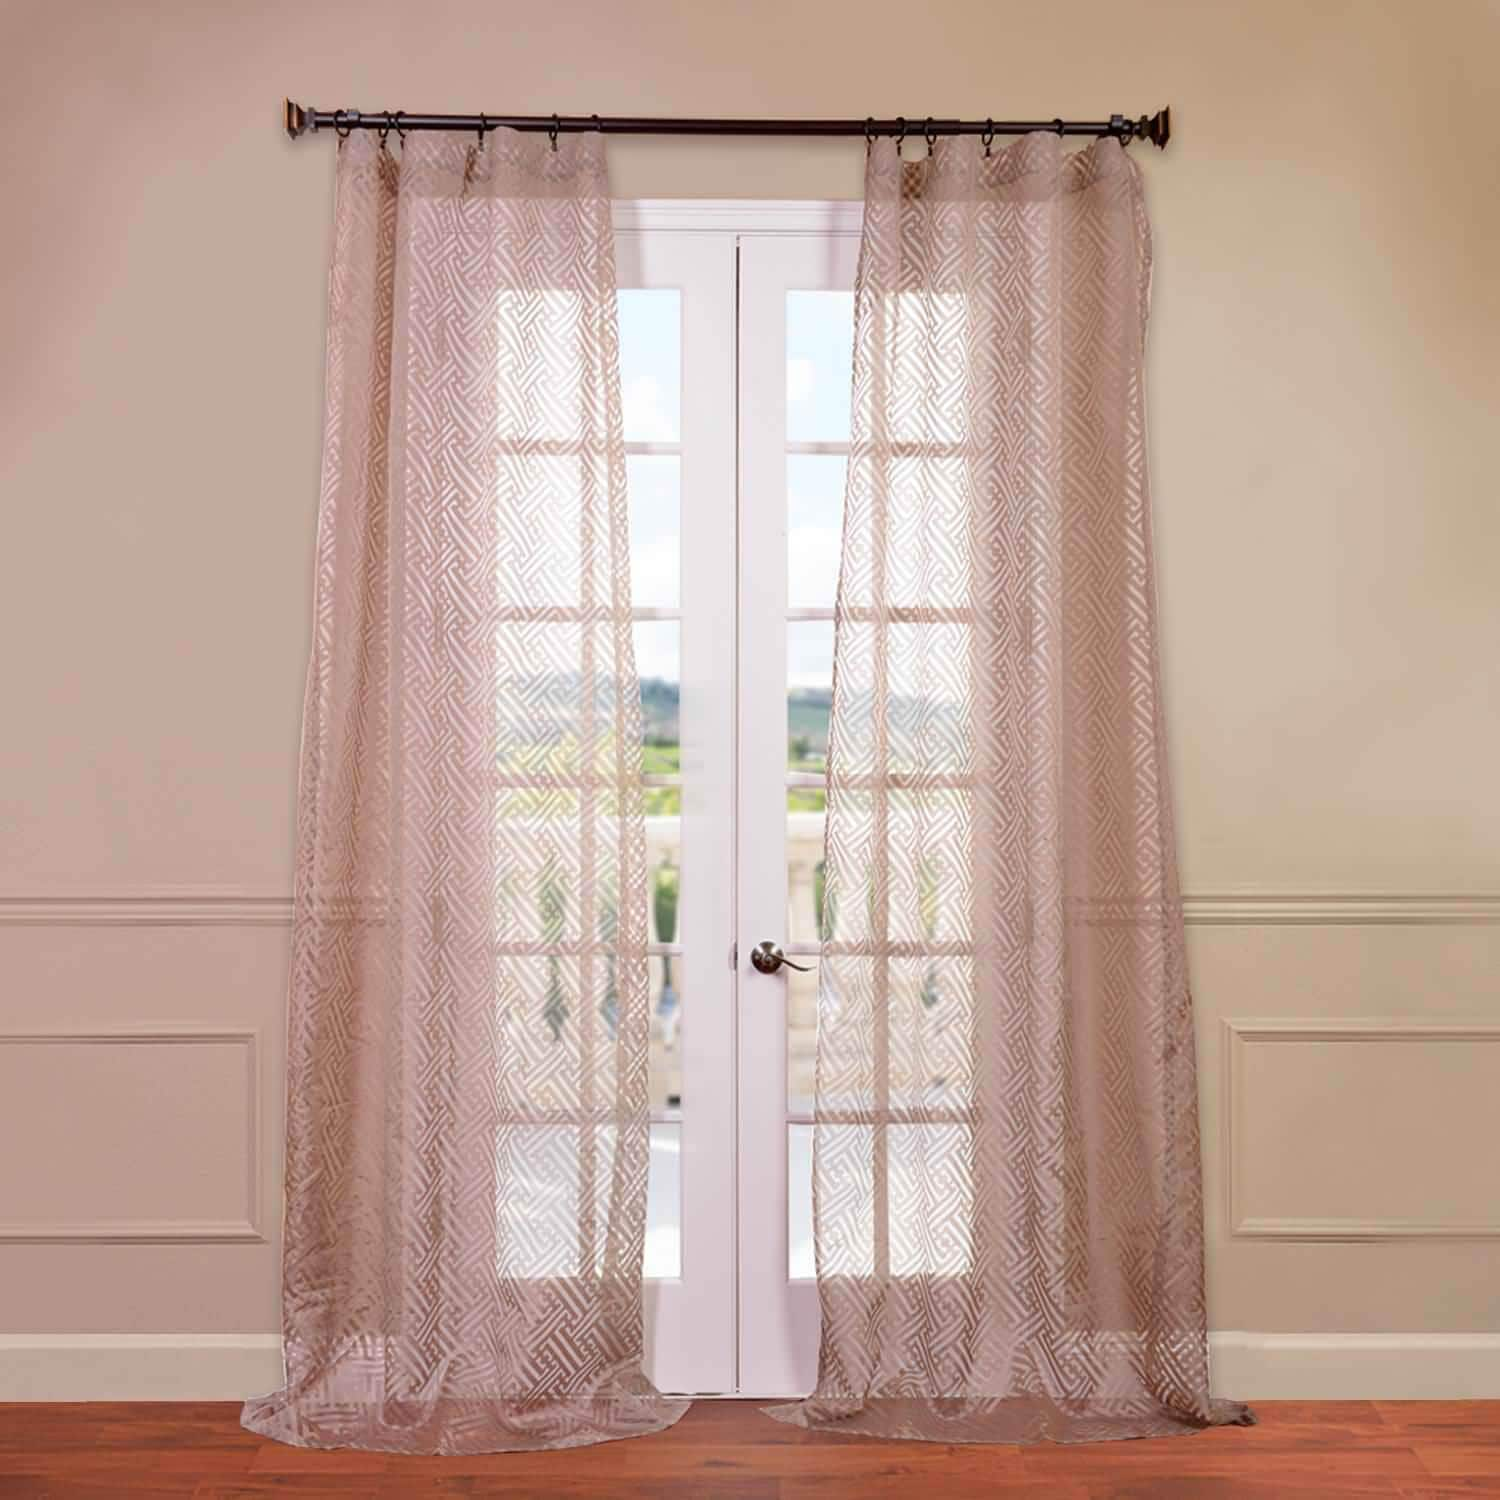 Zara Taupe Patterned Sheer Curtains Drapes